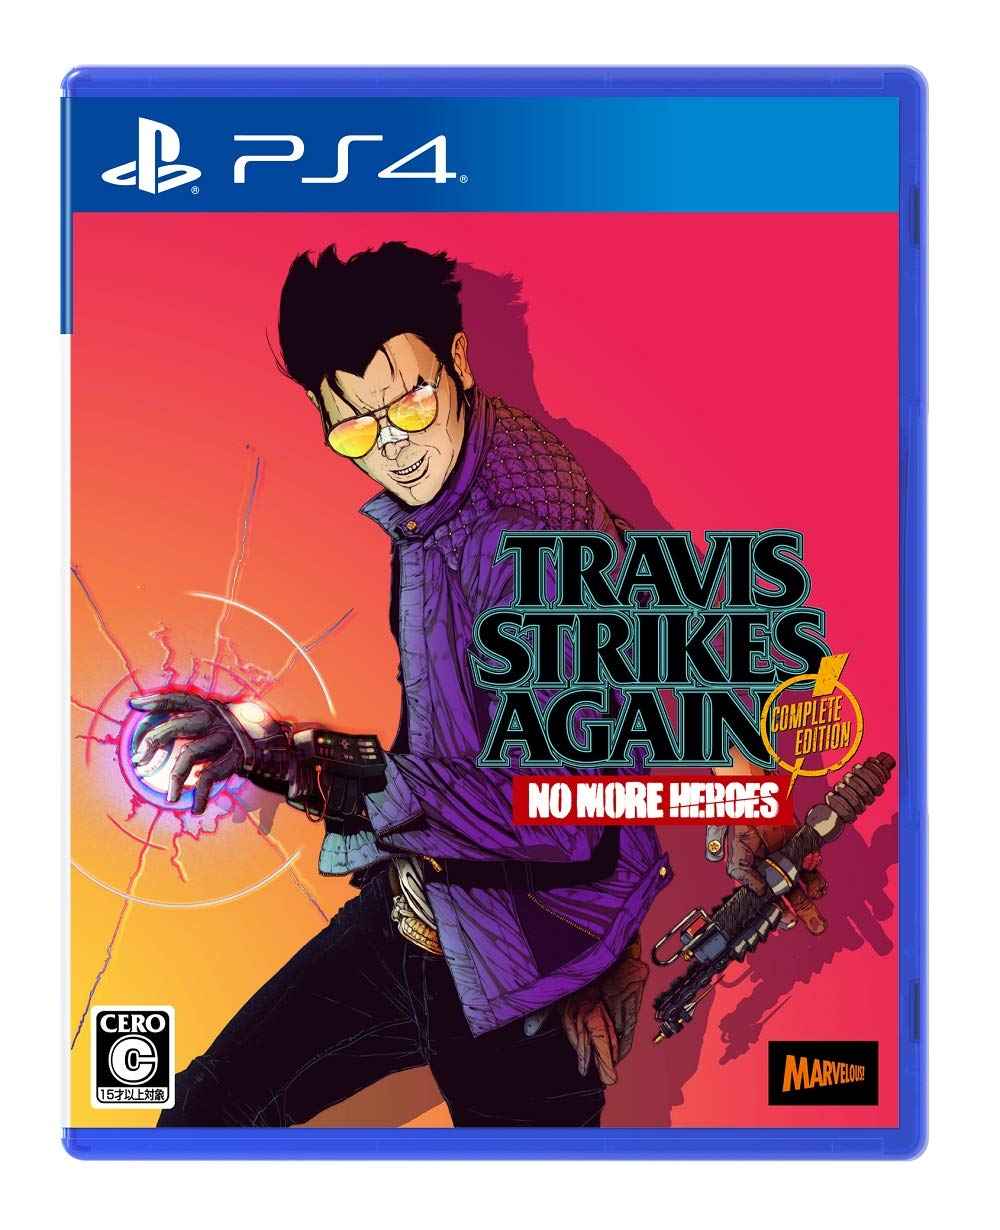 Travis Strikes Again: No More Heroes Complete Edition for PS4 launches October 17 in Japan - Gematsu